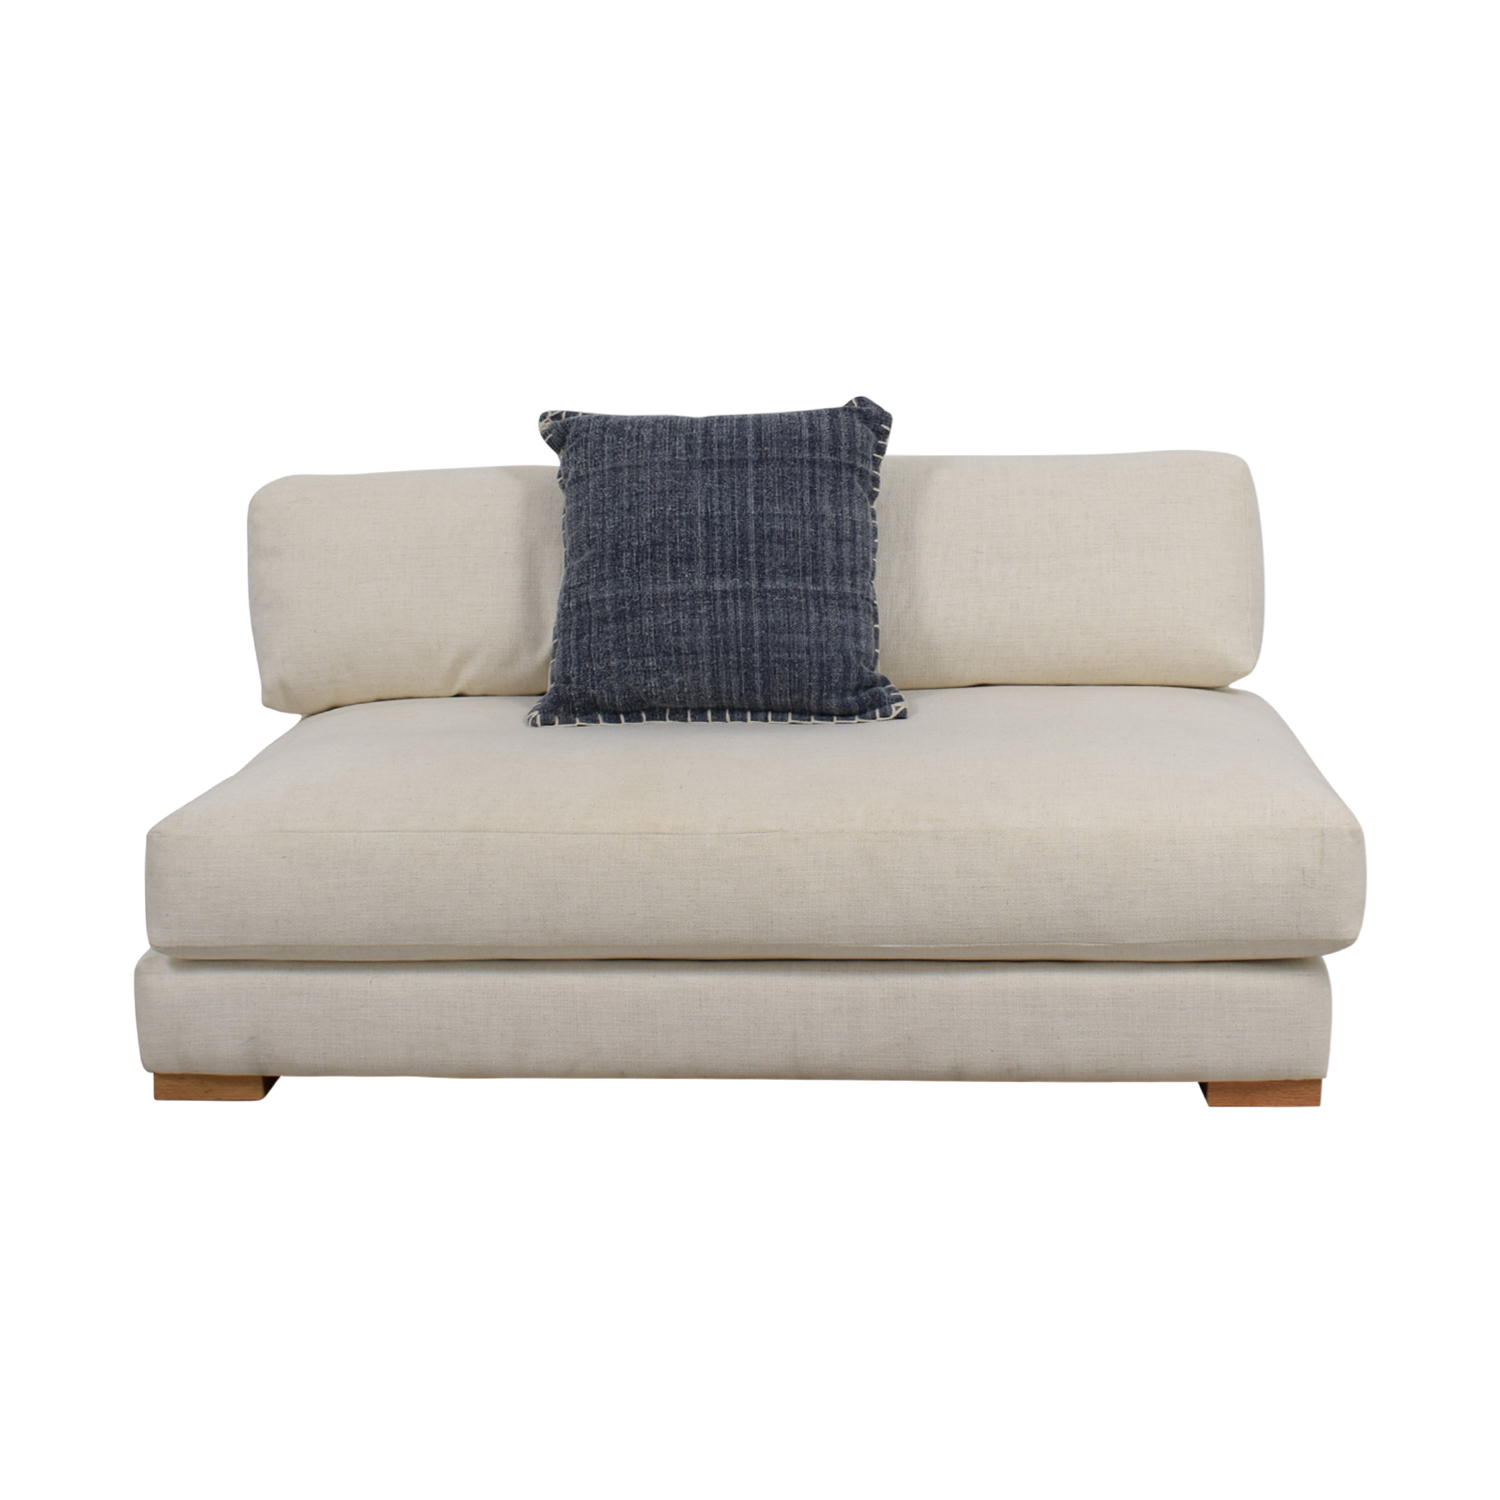 shop CB2 Piazza White Single Cushion Sofa CB2